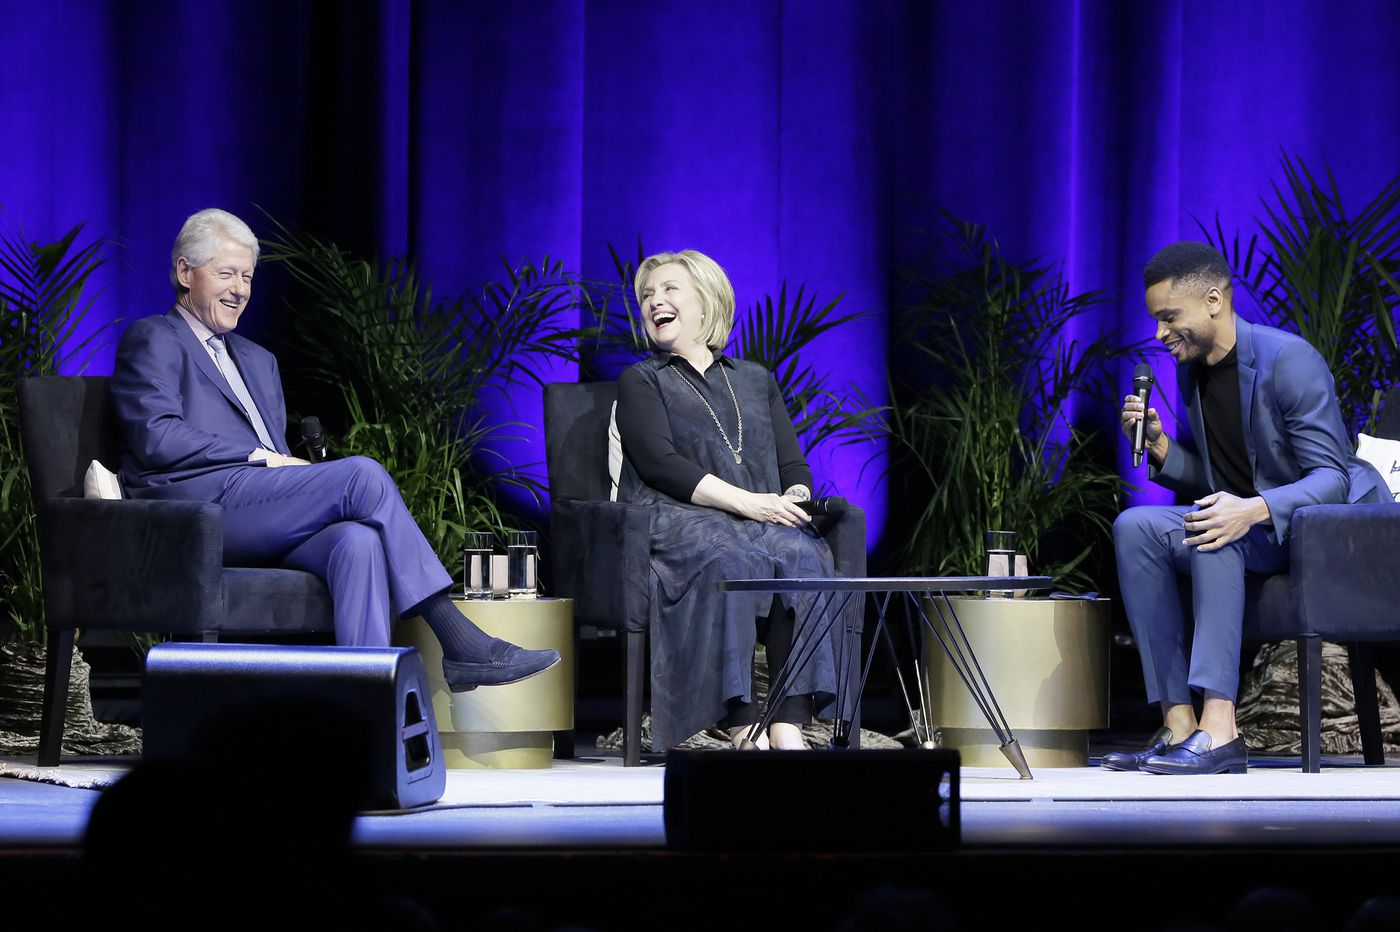 The Clintons visit The Met: A look back, with nods to the future